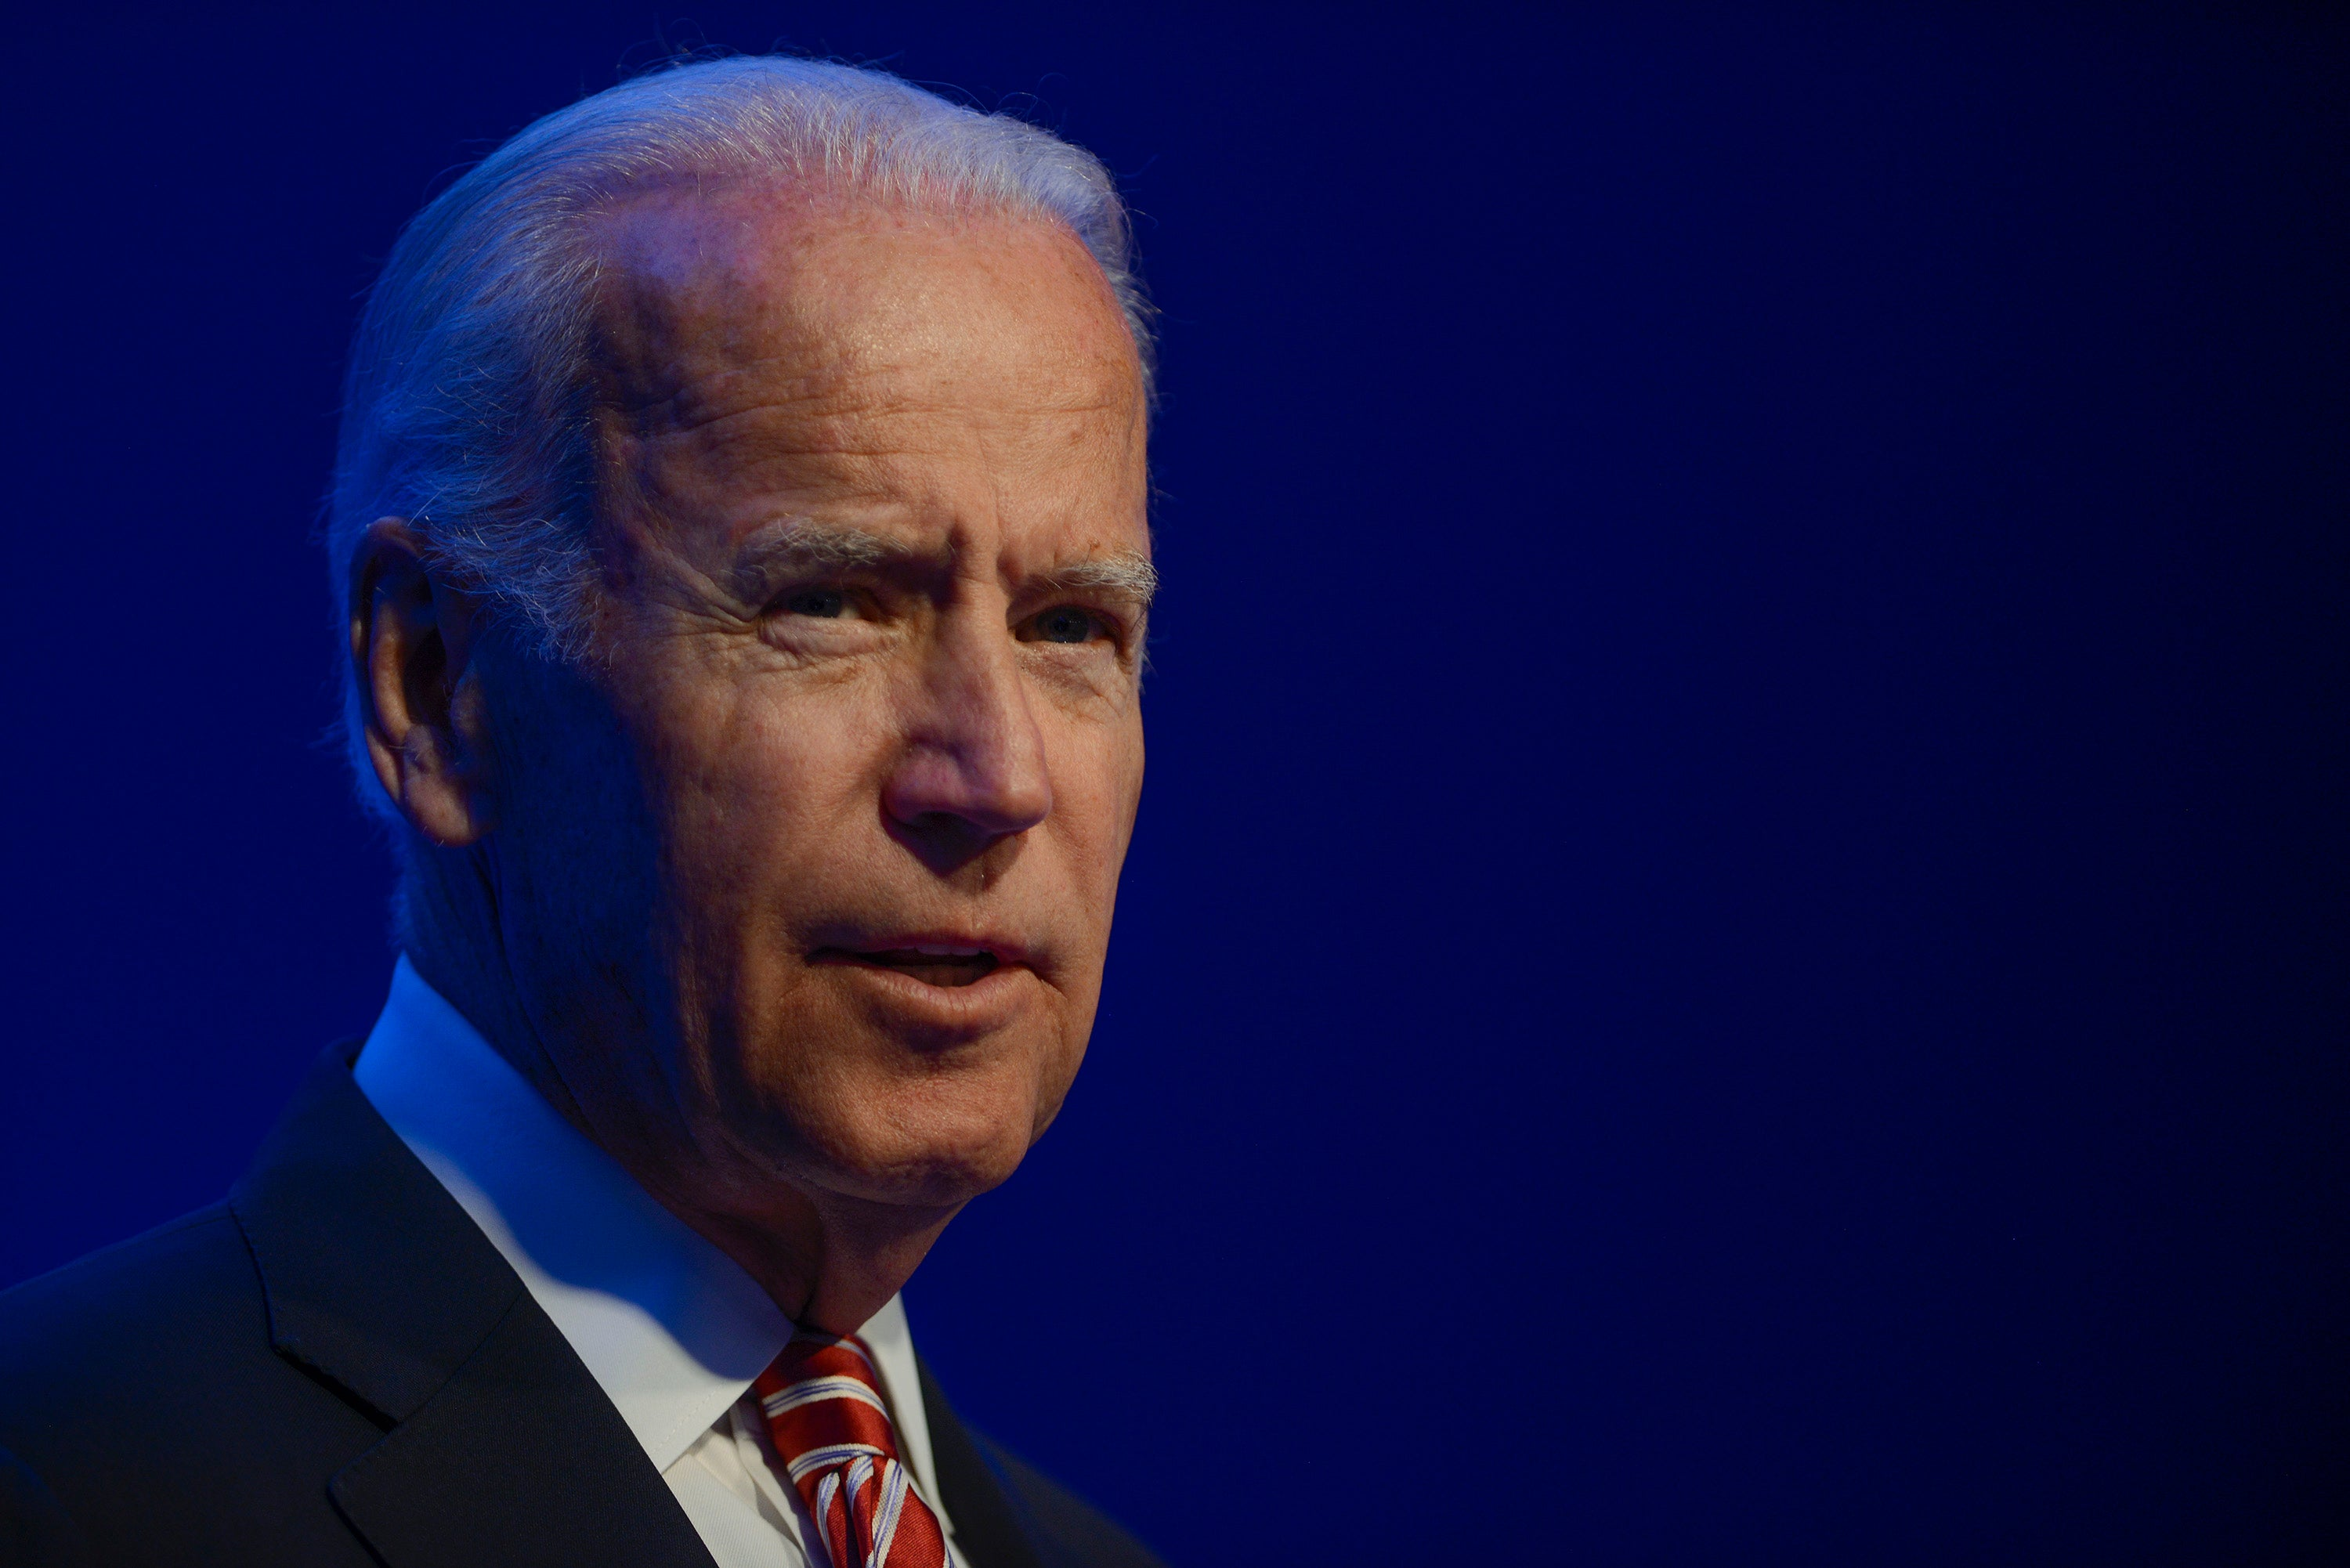 Tell Your Mee-Maw And Them To Break Up With Joe Biden. I'm Bored